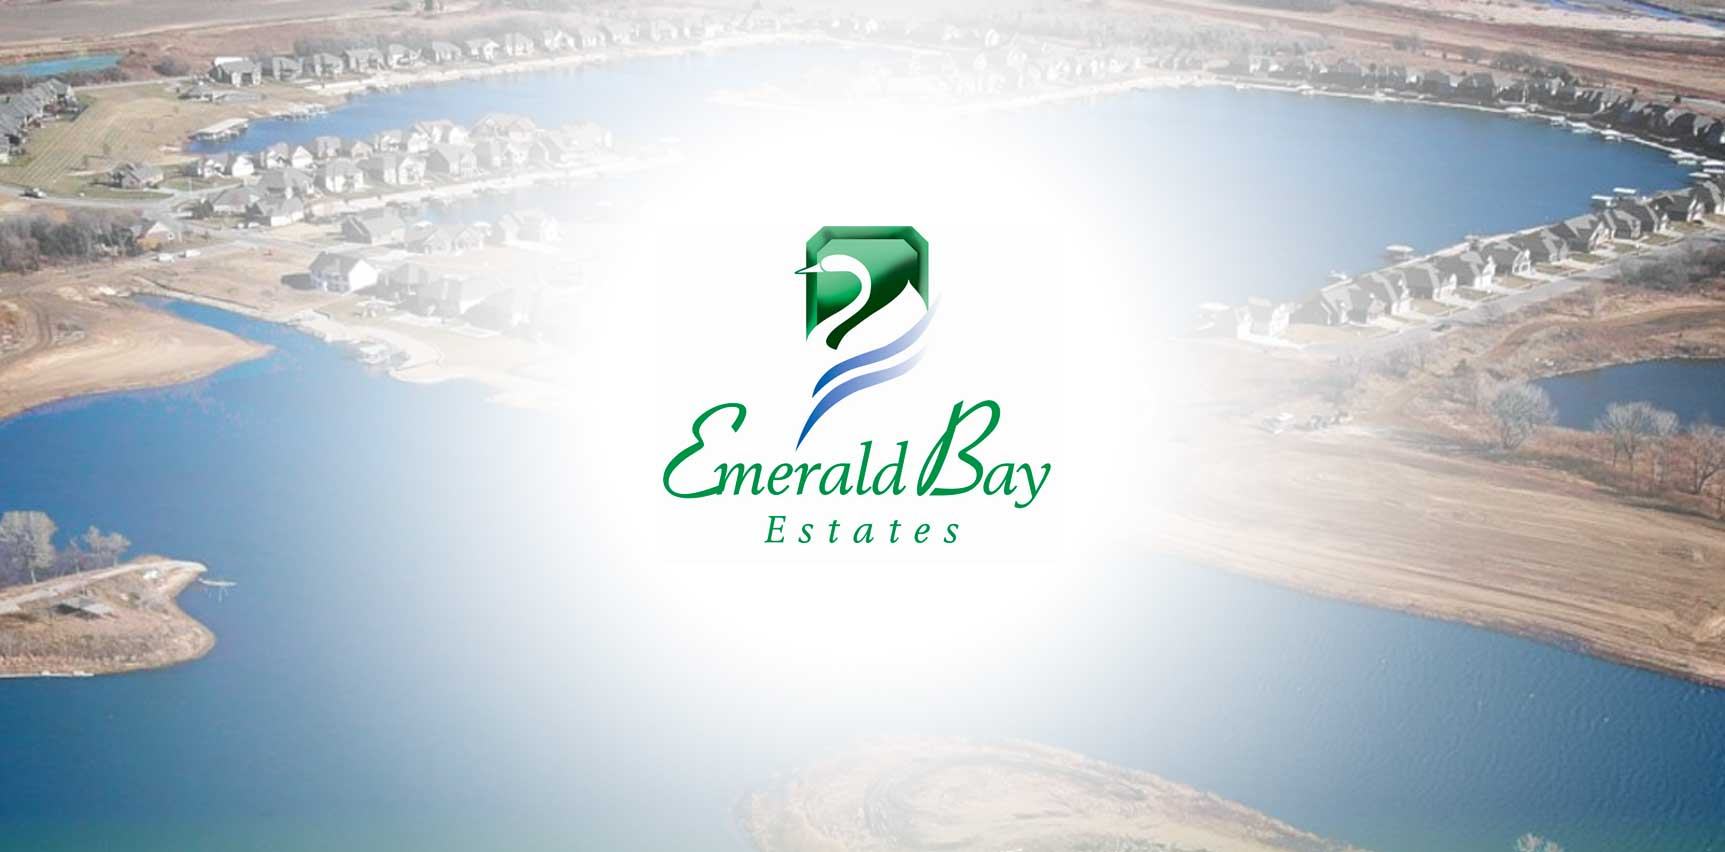 House for sale: Emerald Bay Estates